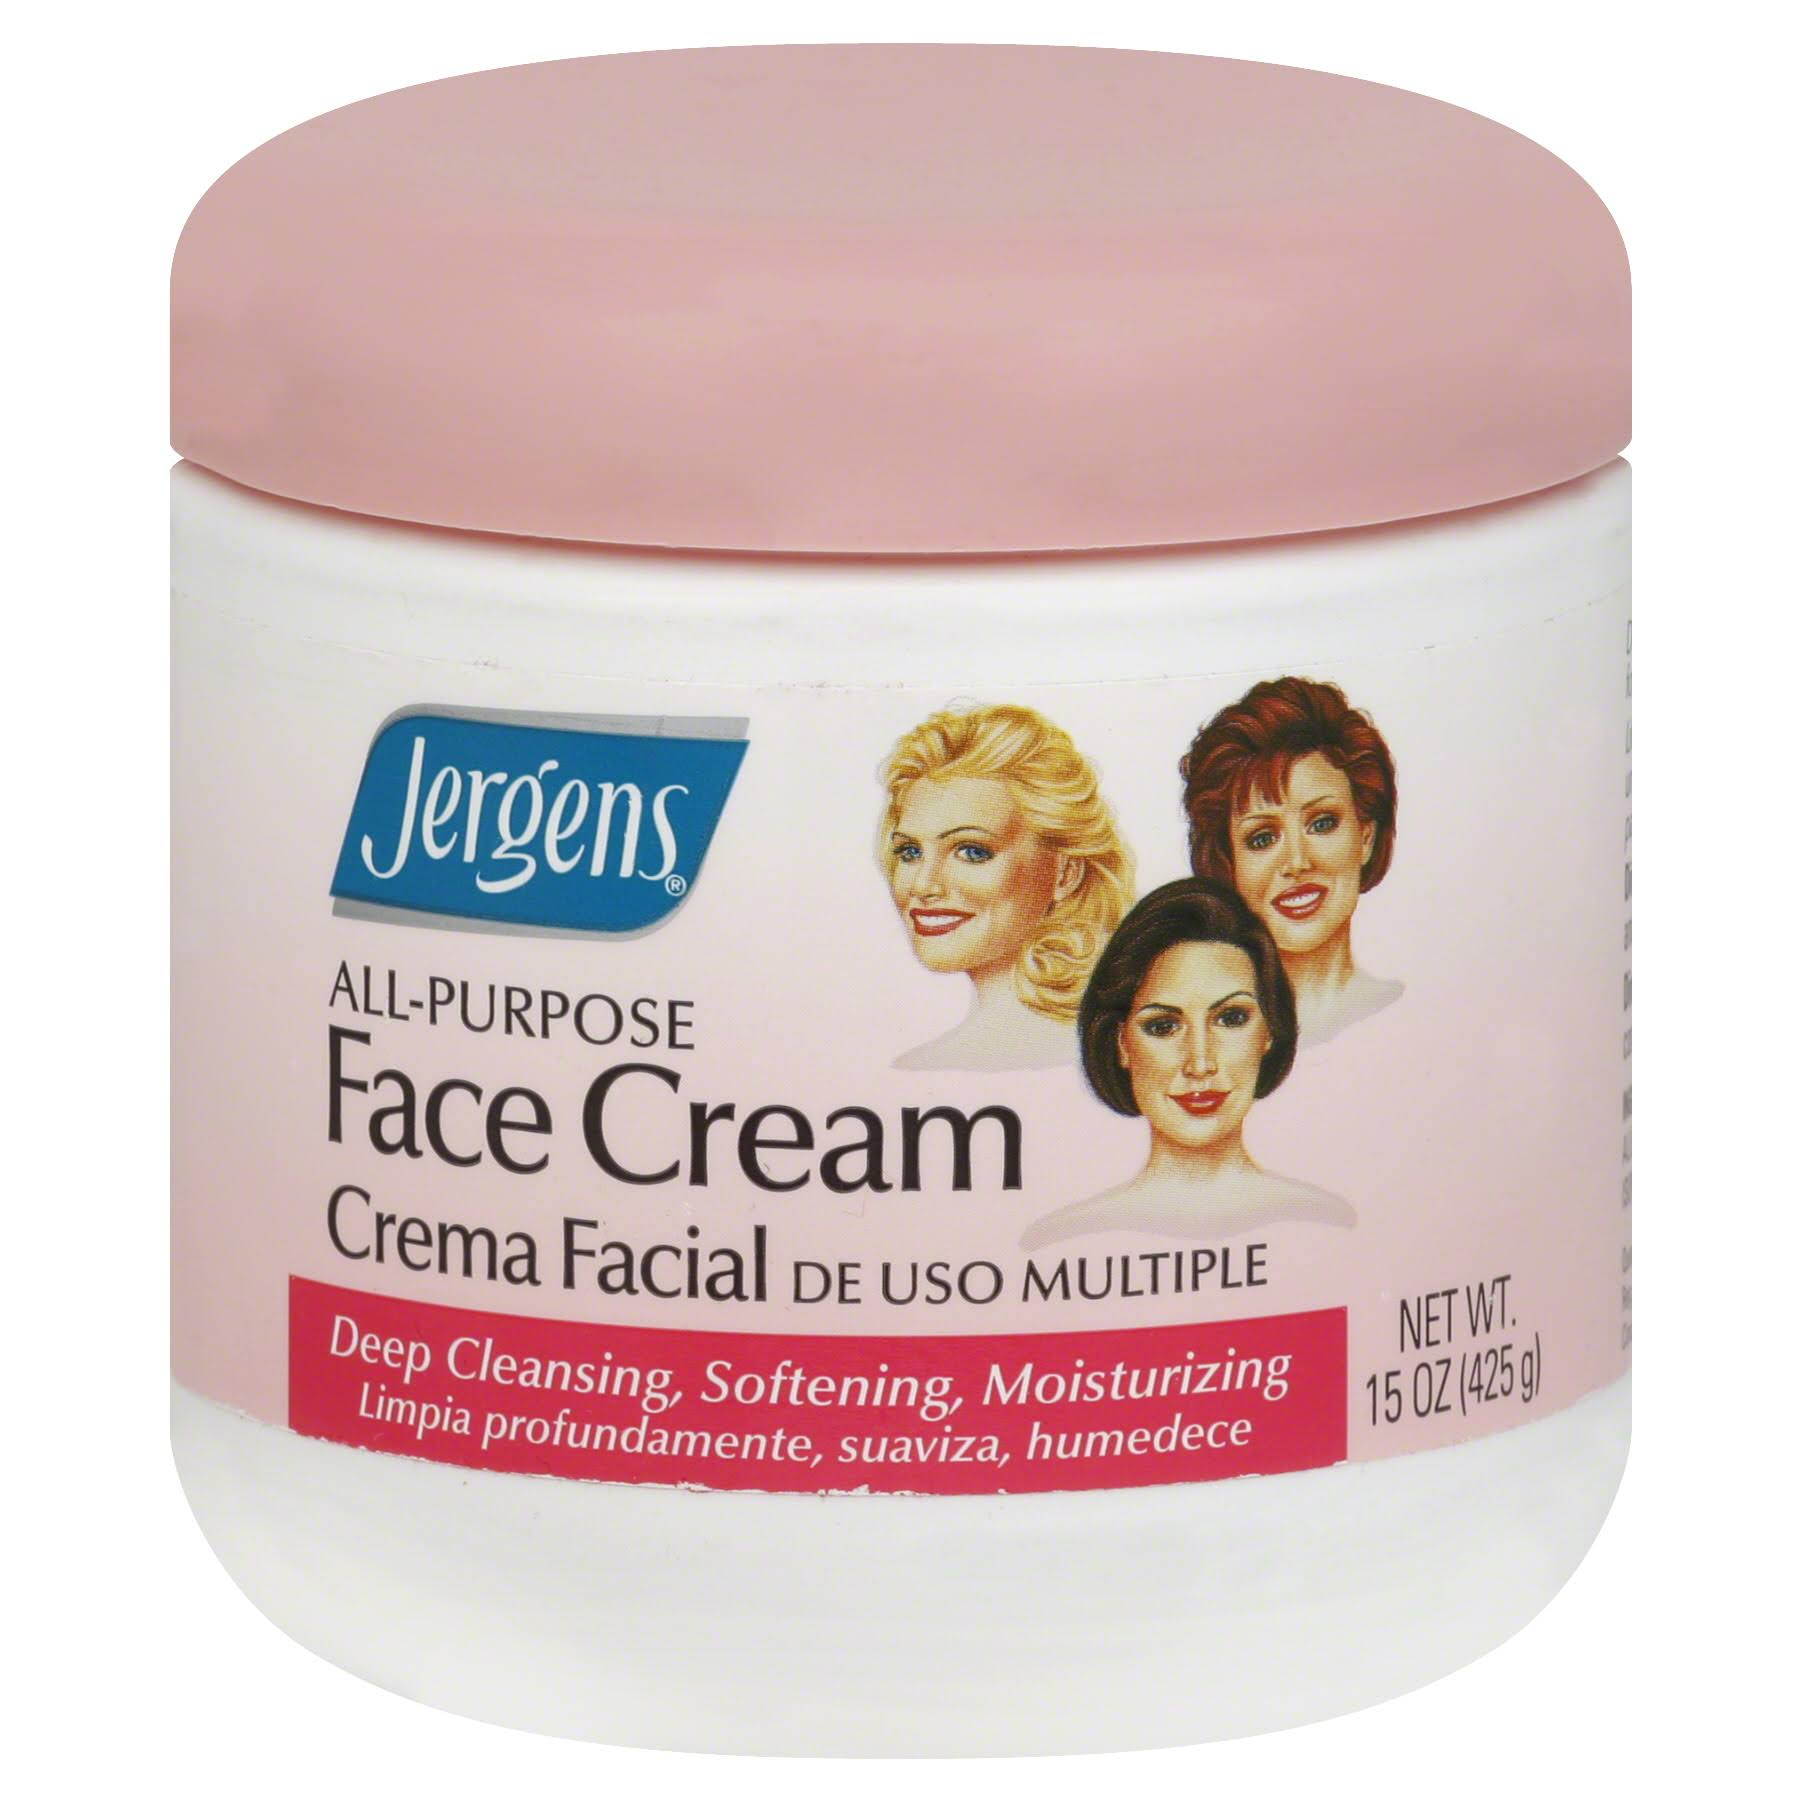 Jergens All-Purpose Face Cream - 15oz